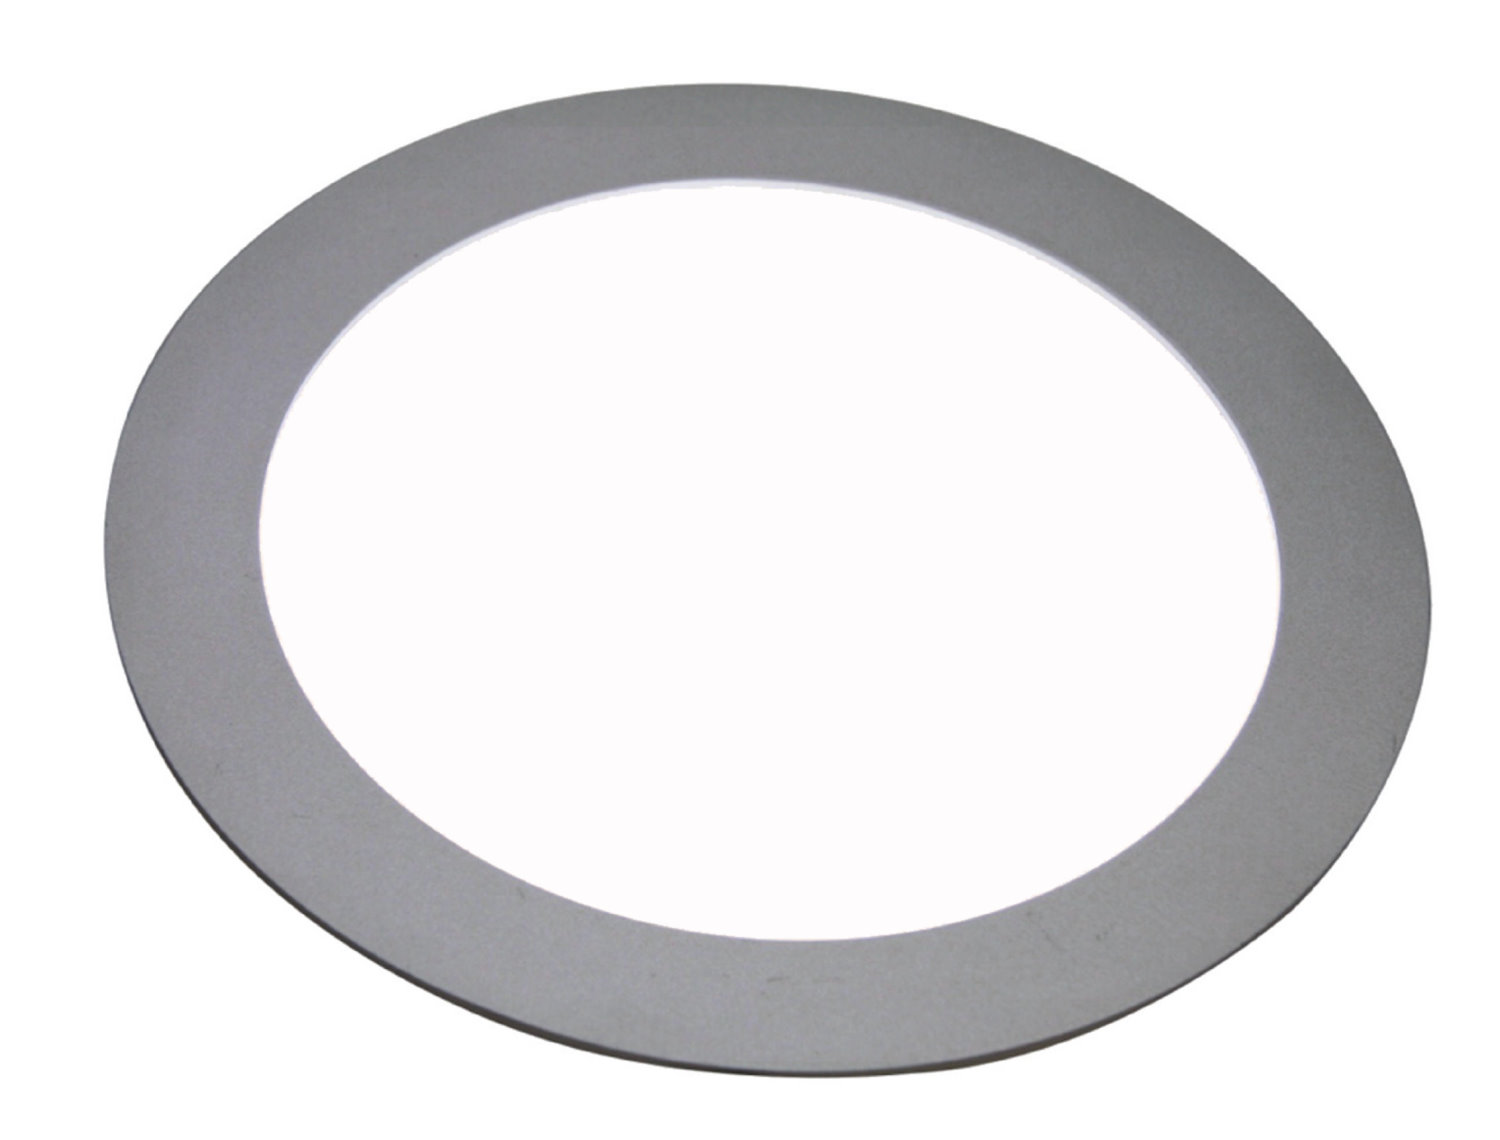 Smd led panel dimmable ceiling lamp light ceiling light for Deckenleuchte rund flach